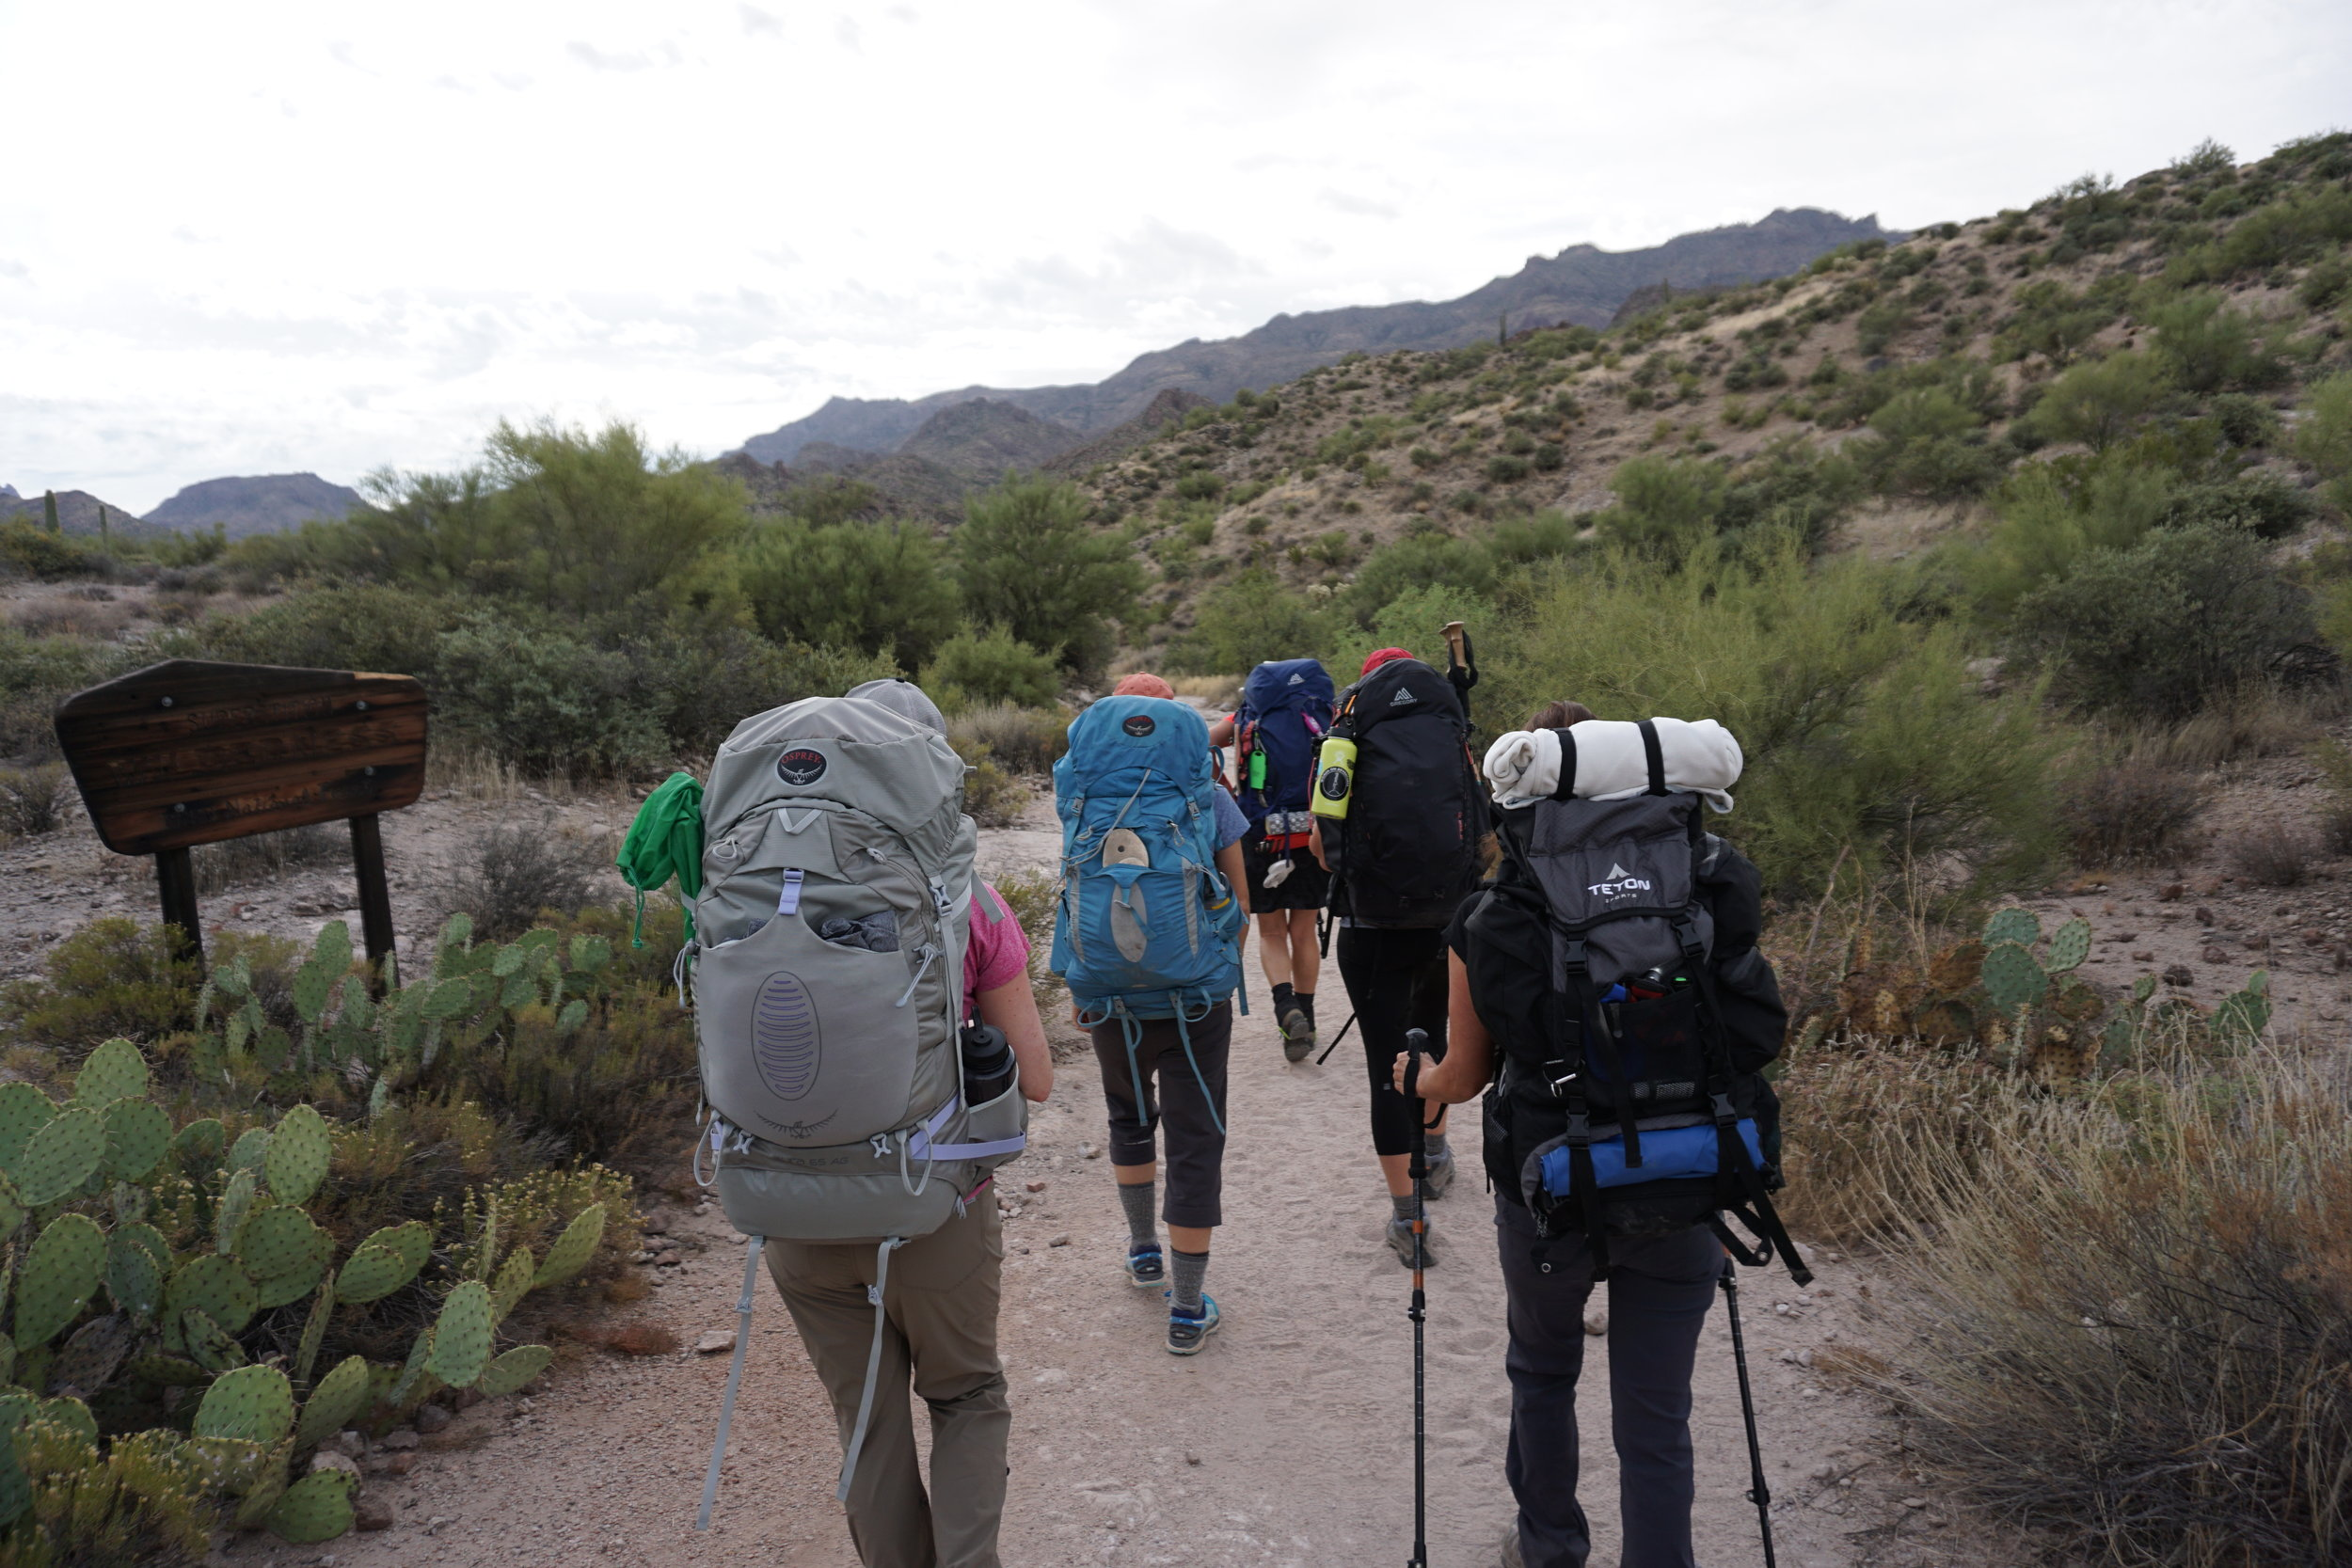 Women on Adventures heading out into the Superstitions in Phoenix.